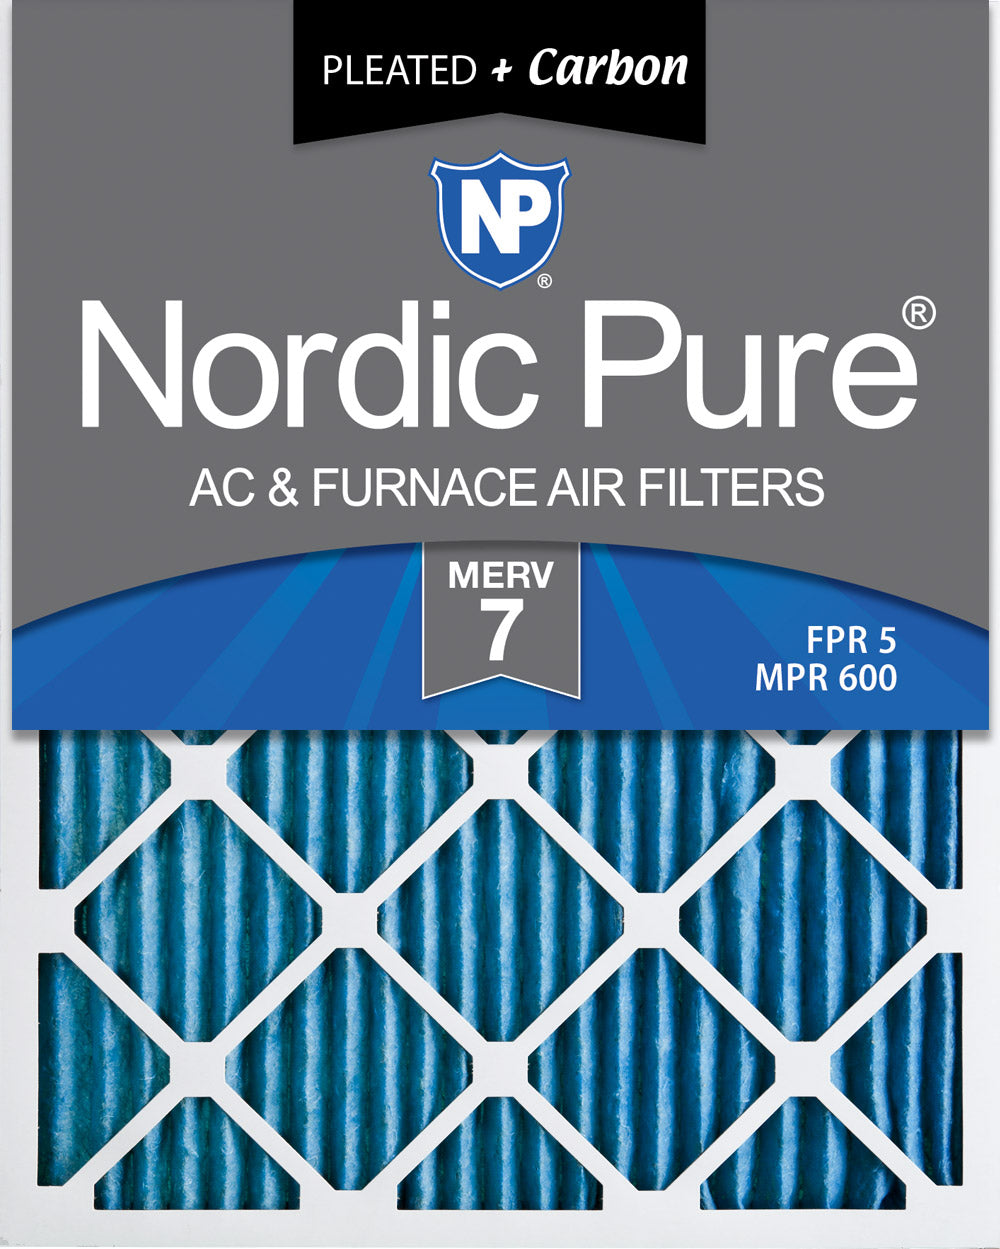 14x20x2 Pleated Air Filters MERV 7 Plus Carbon 3 Pack